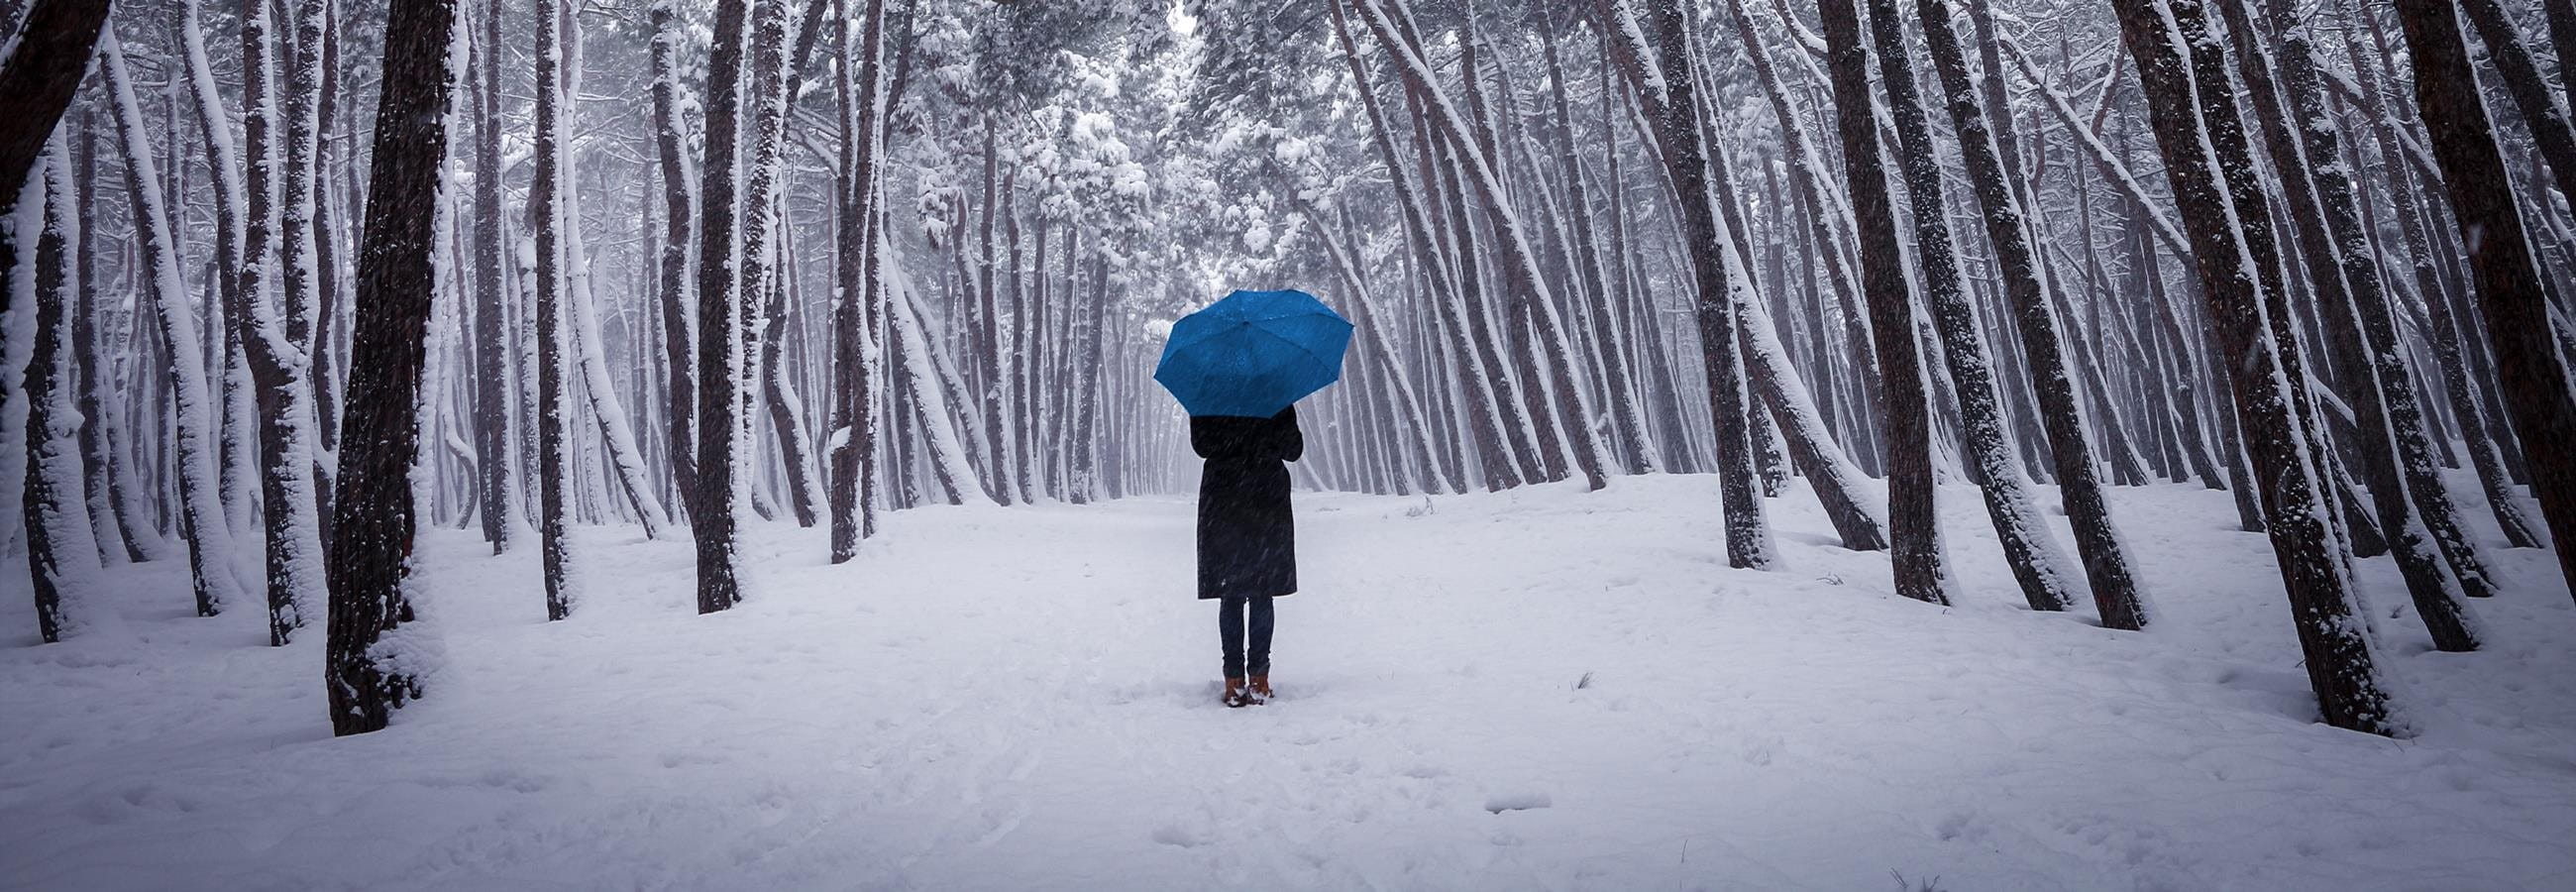 Woman walking in a snowy forest, carrying an umbrella.